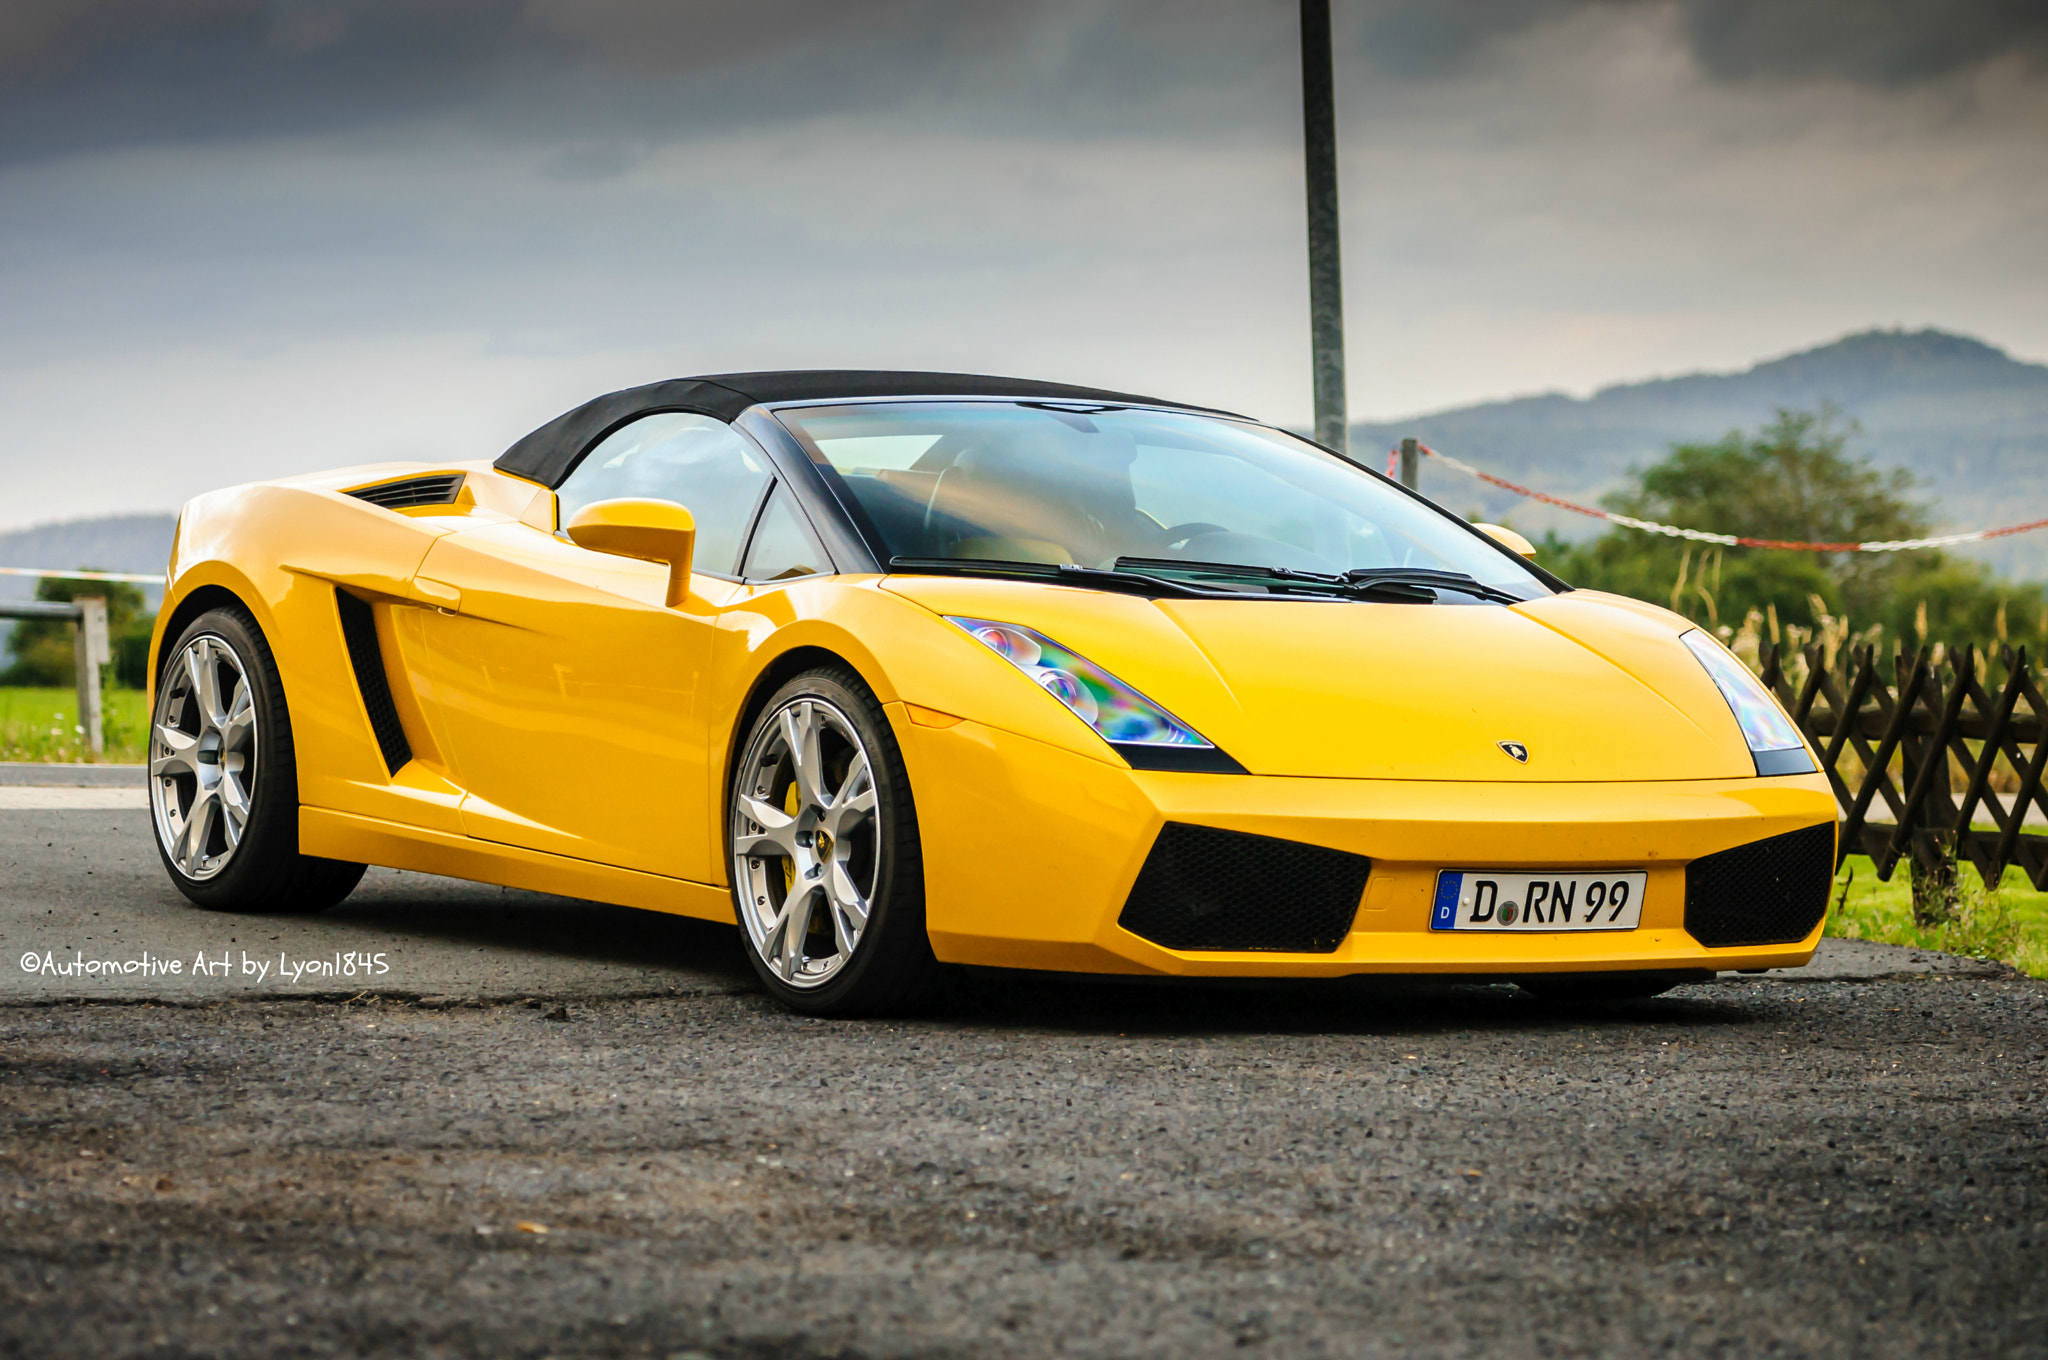 Photograph Lamborghini Gallardo Spyder by lyon1845 on 500px